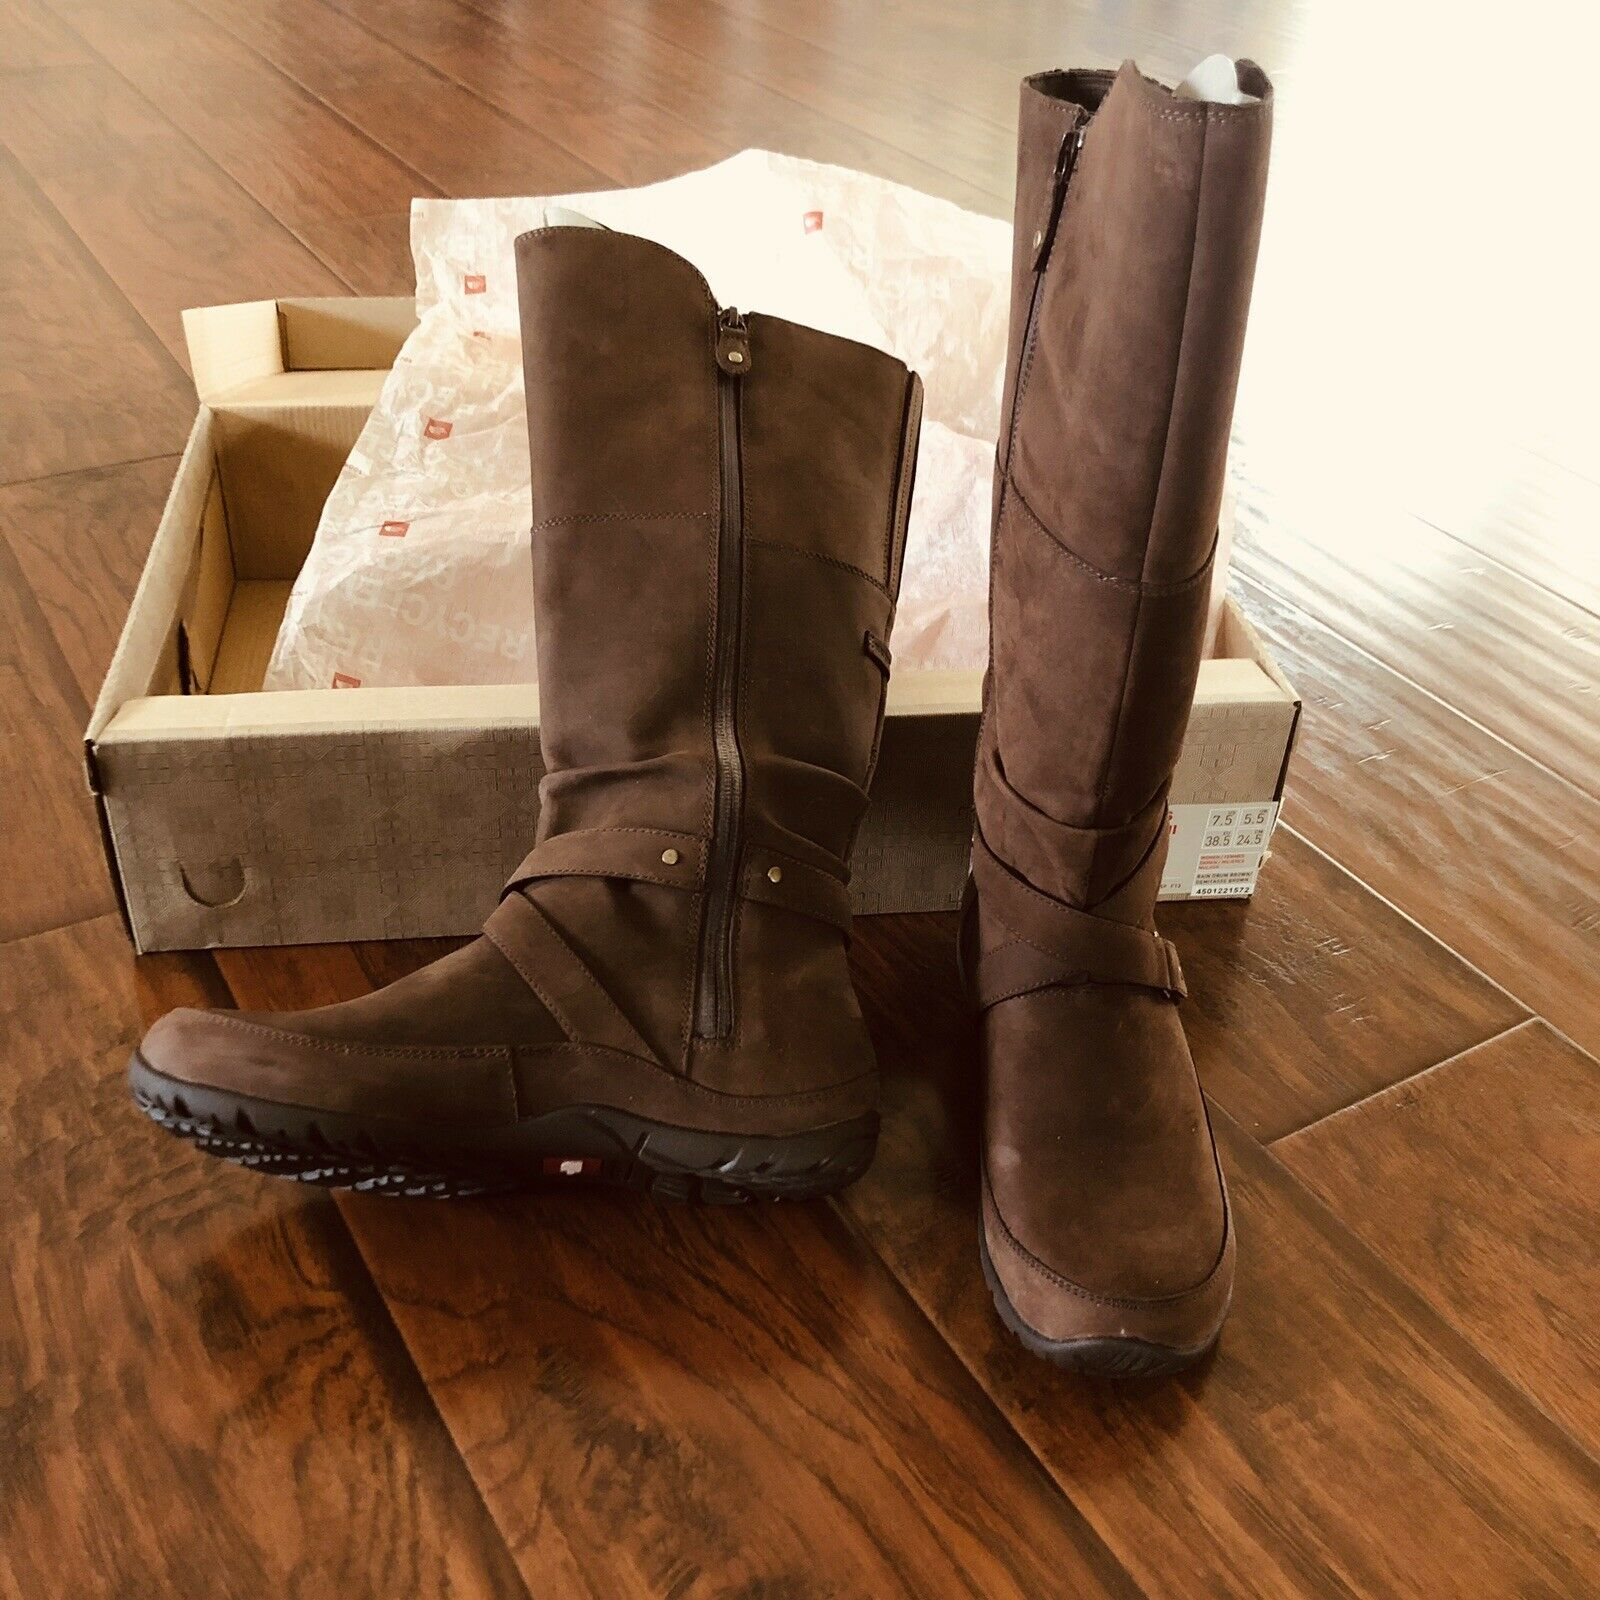 The North Face Womens Camryn II Mid Calf Boots Brown Size 7.5